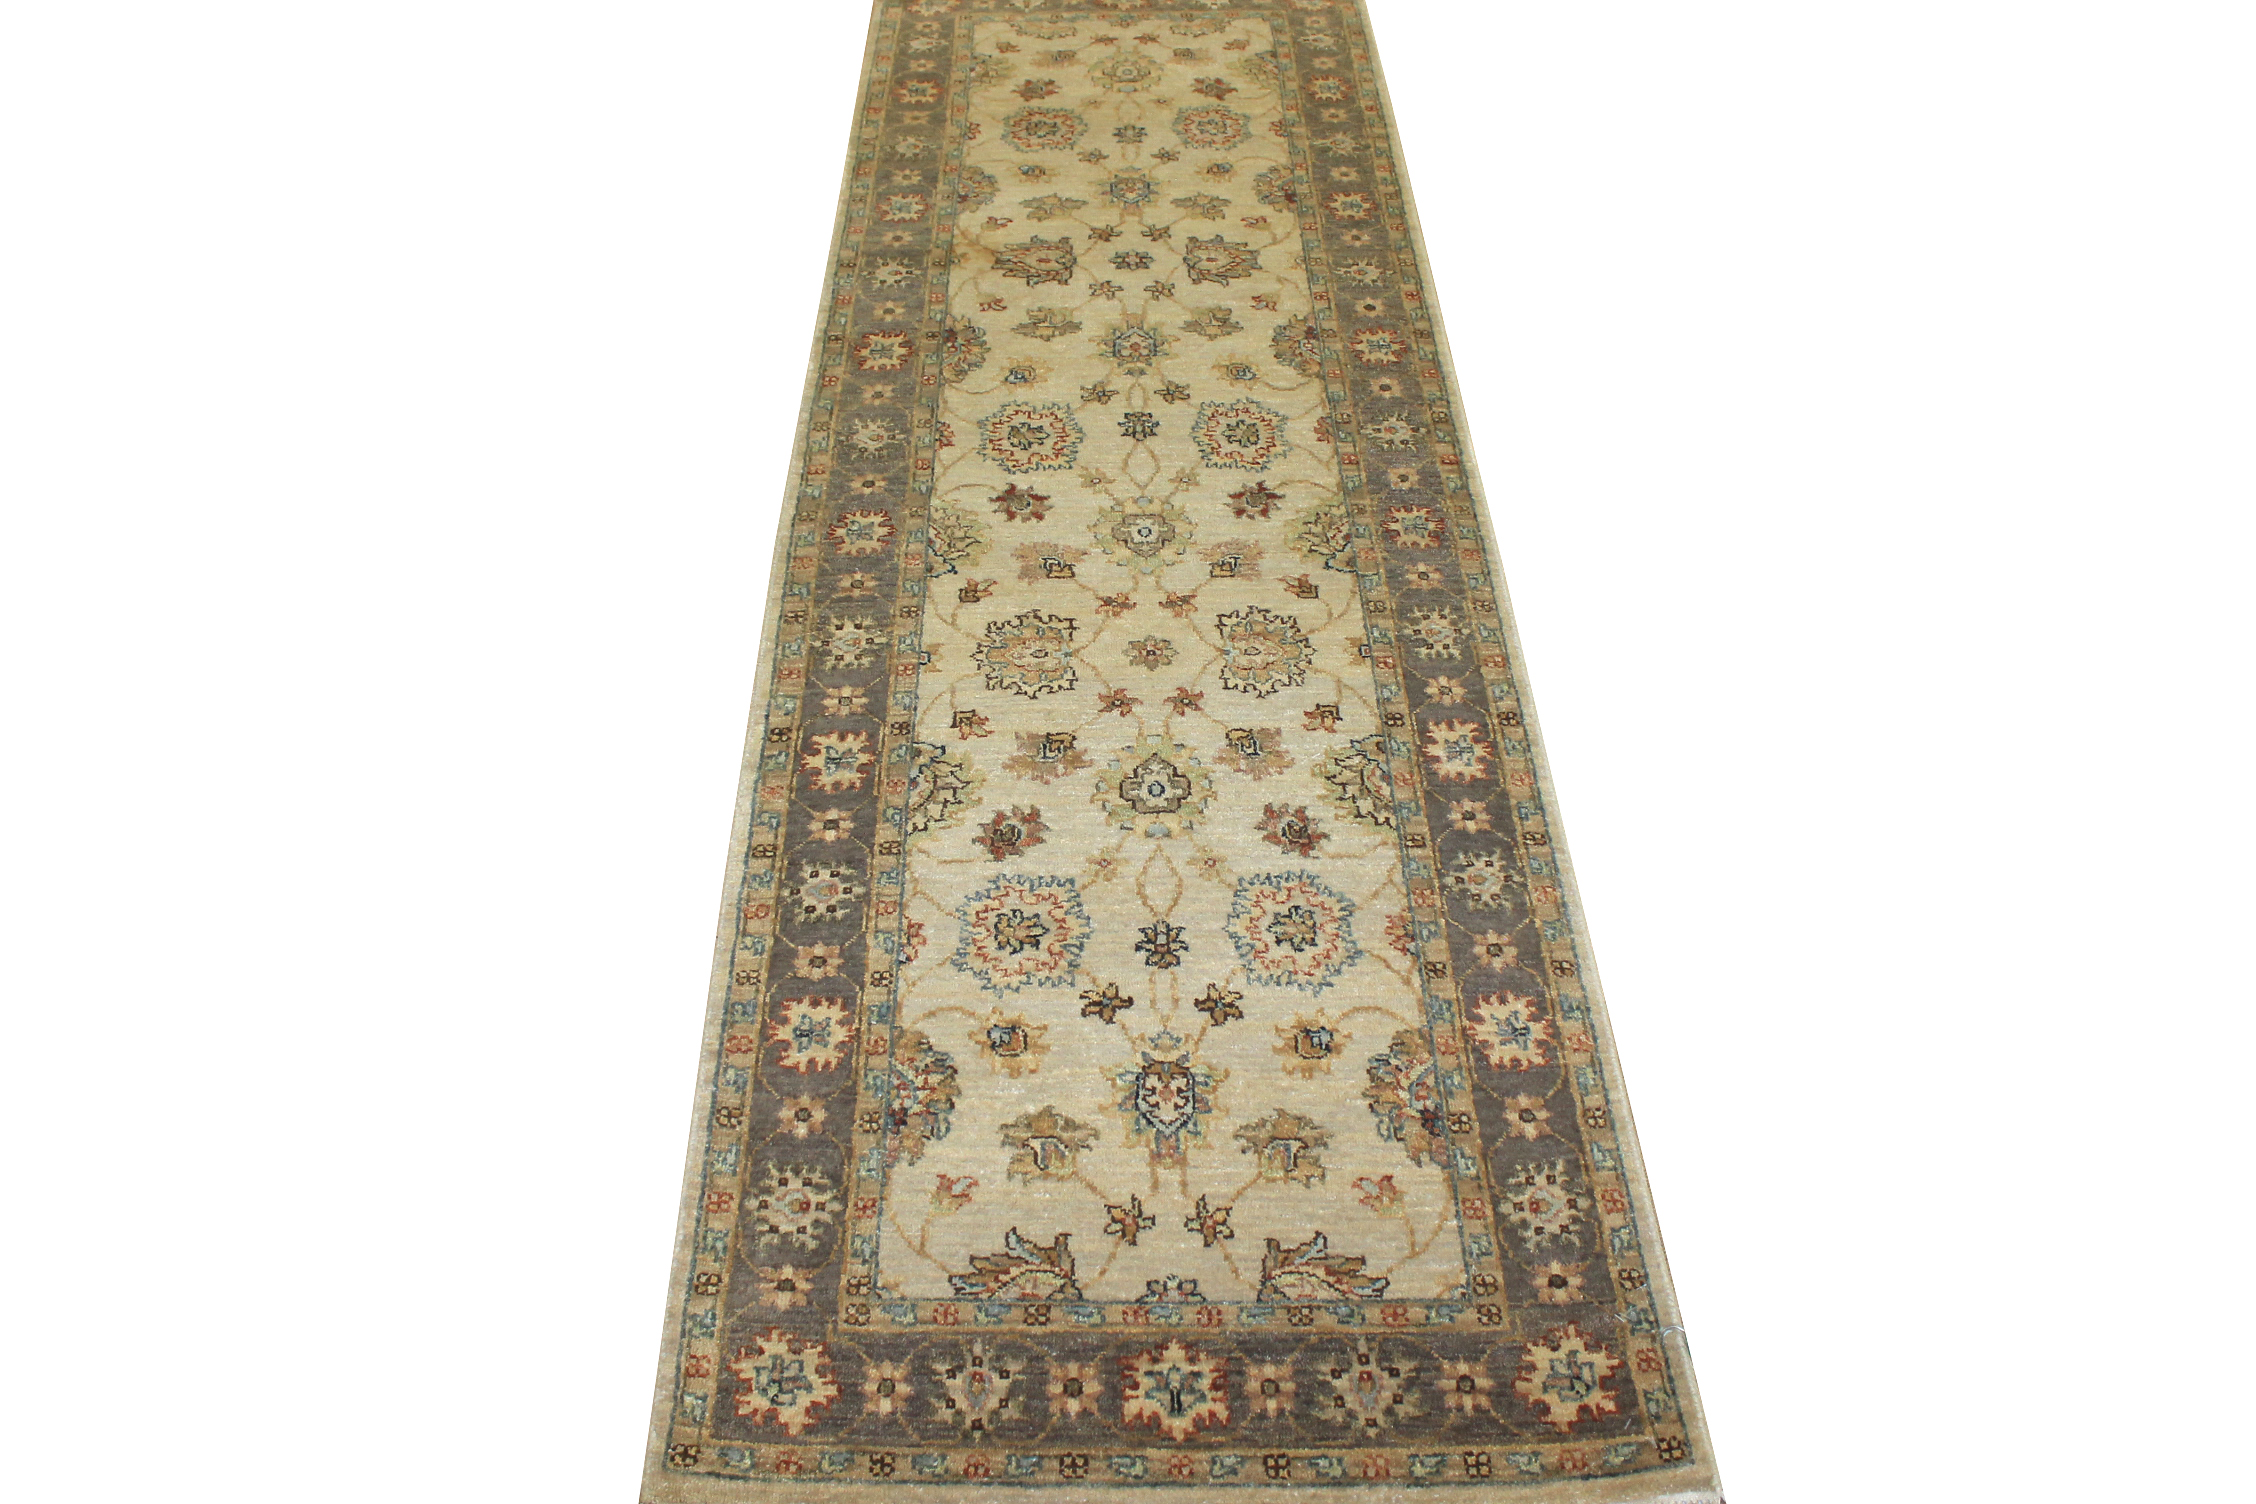 8 ft. Runner Traditional Hand Knotted Wool Area Rug - MR13847